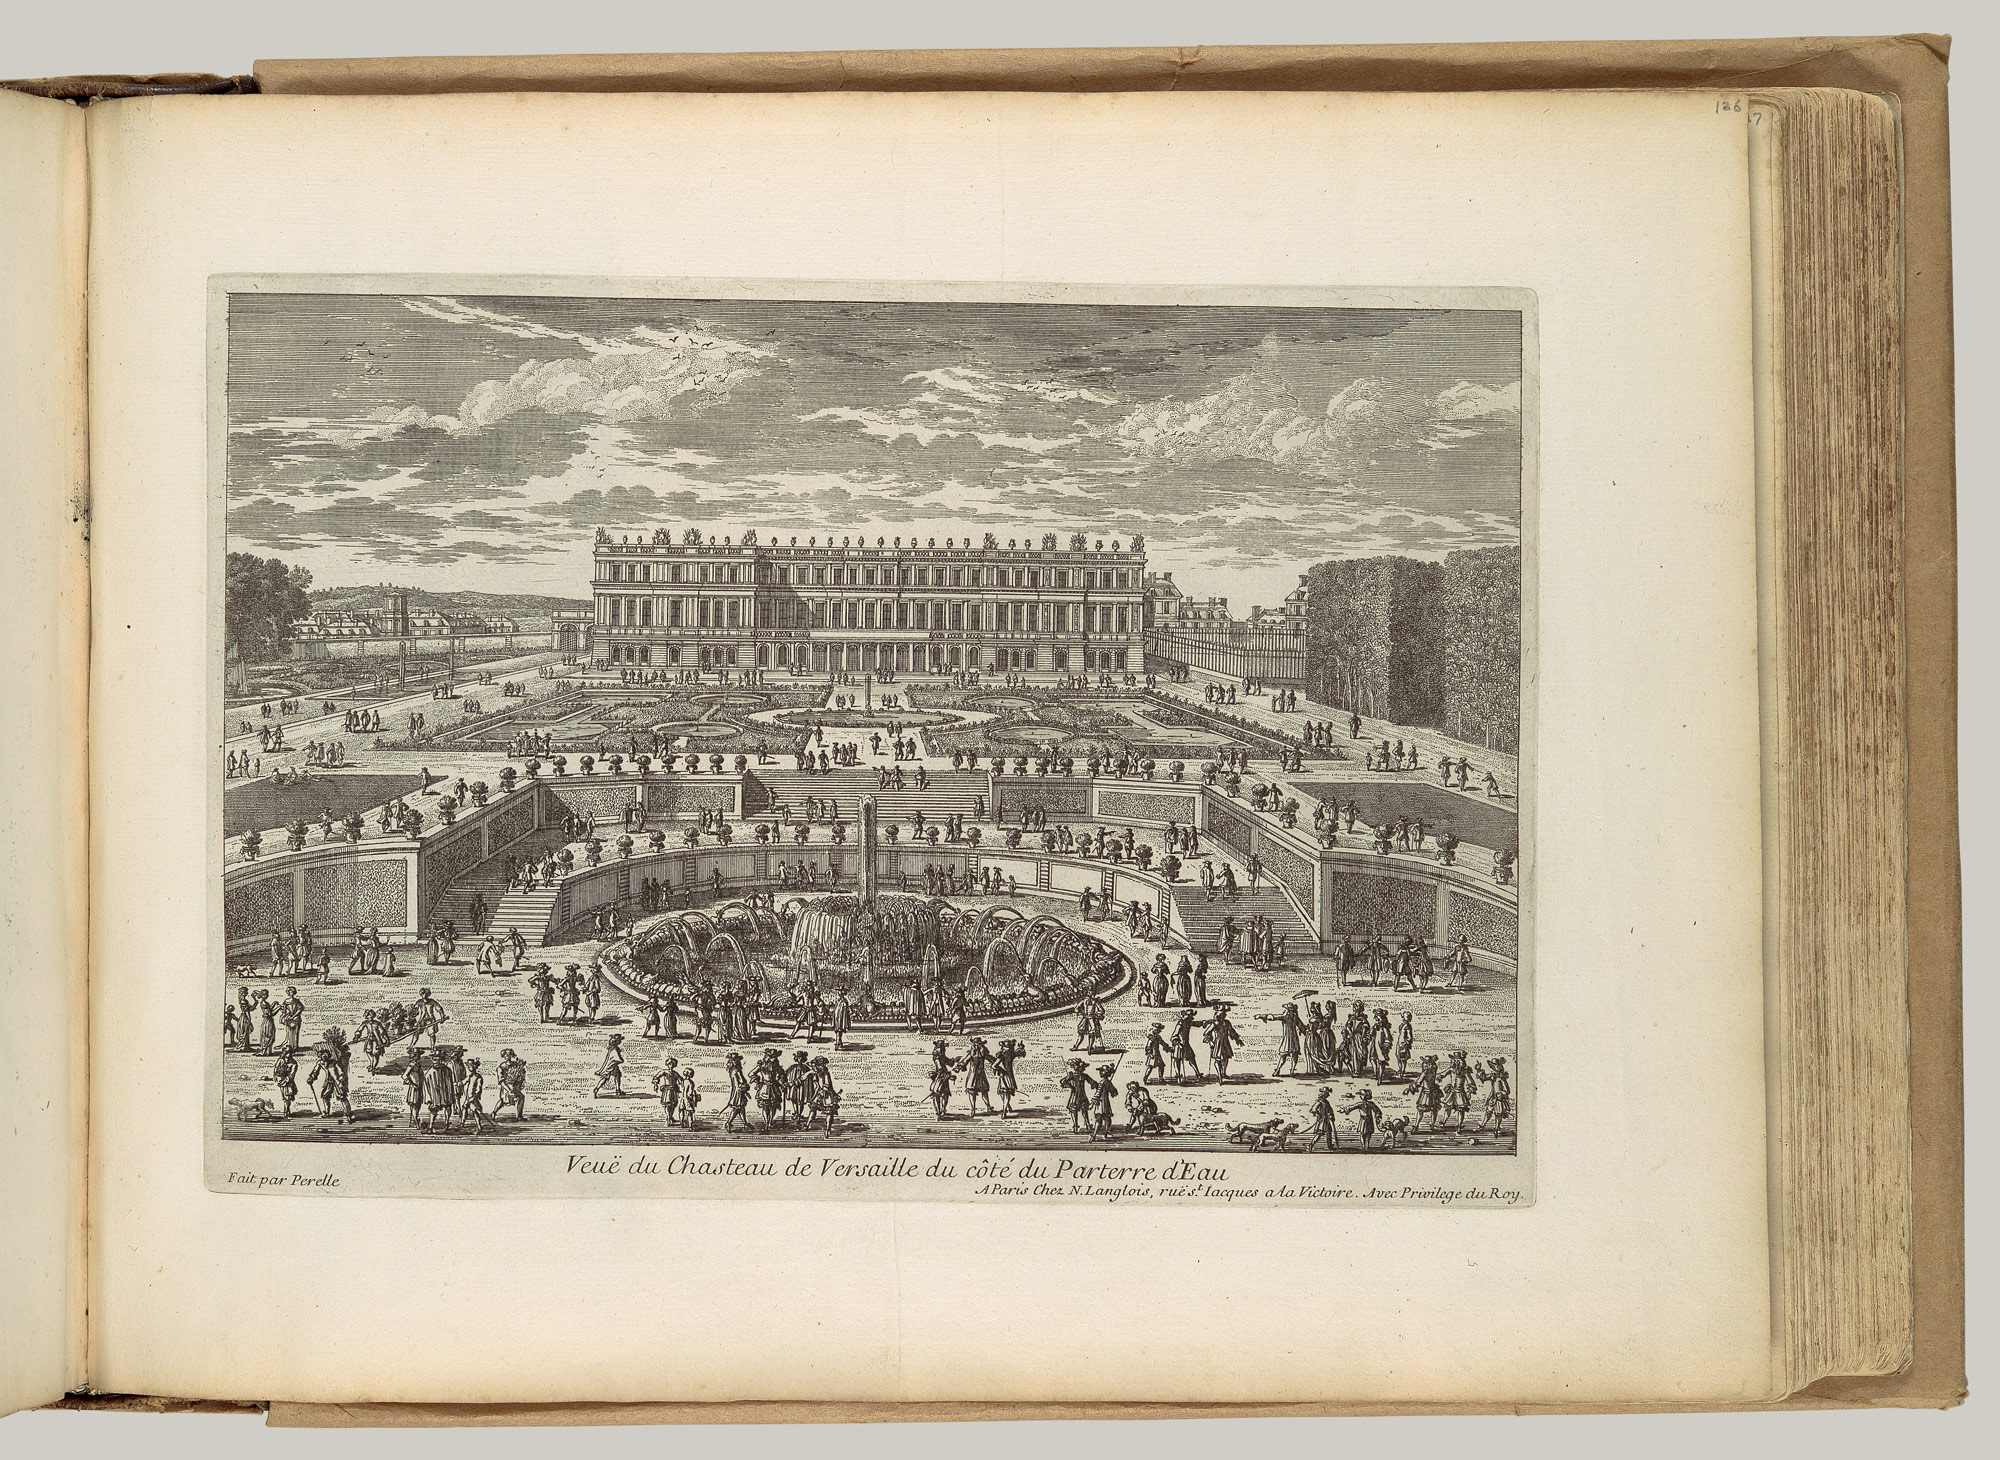 Veue du chasteau de Versailles (View of Versailles, garden facade): From the series eues des plus Beaux Lieux de France et dItalie . . .